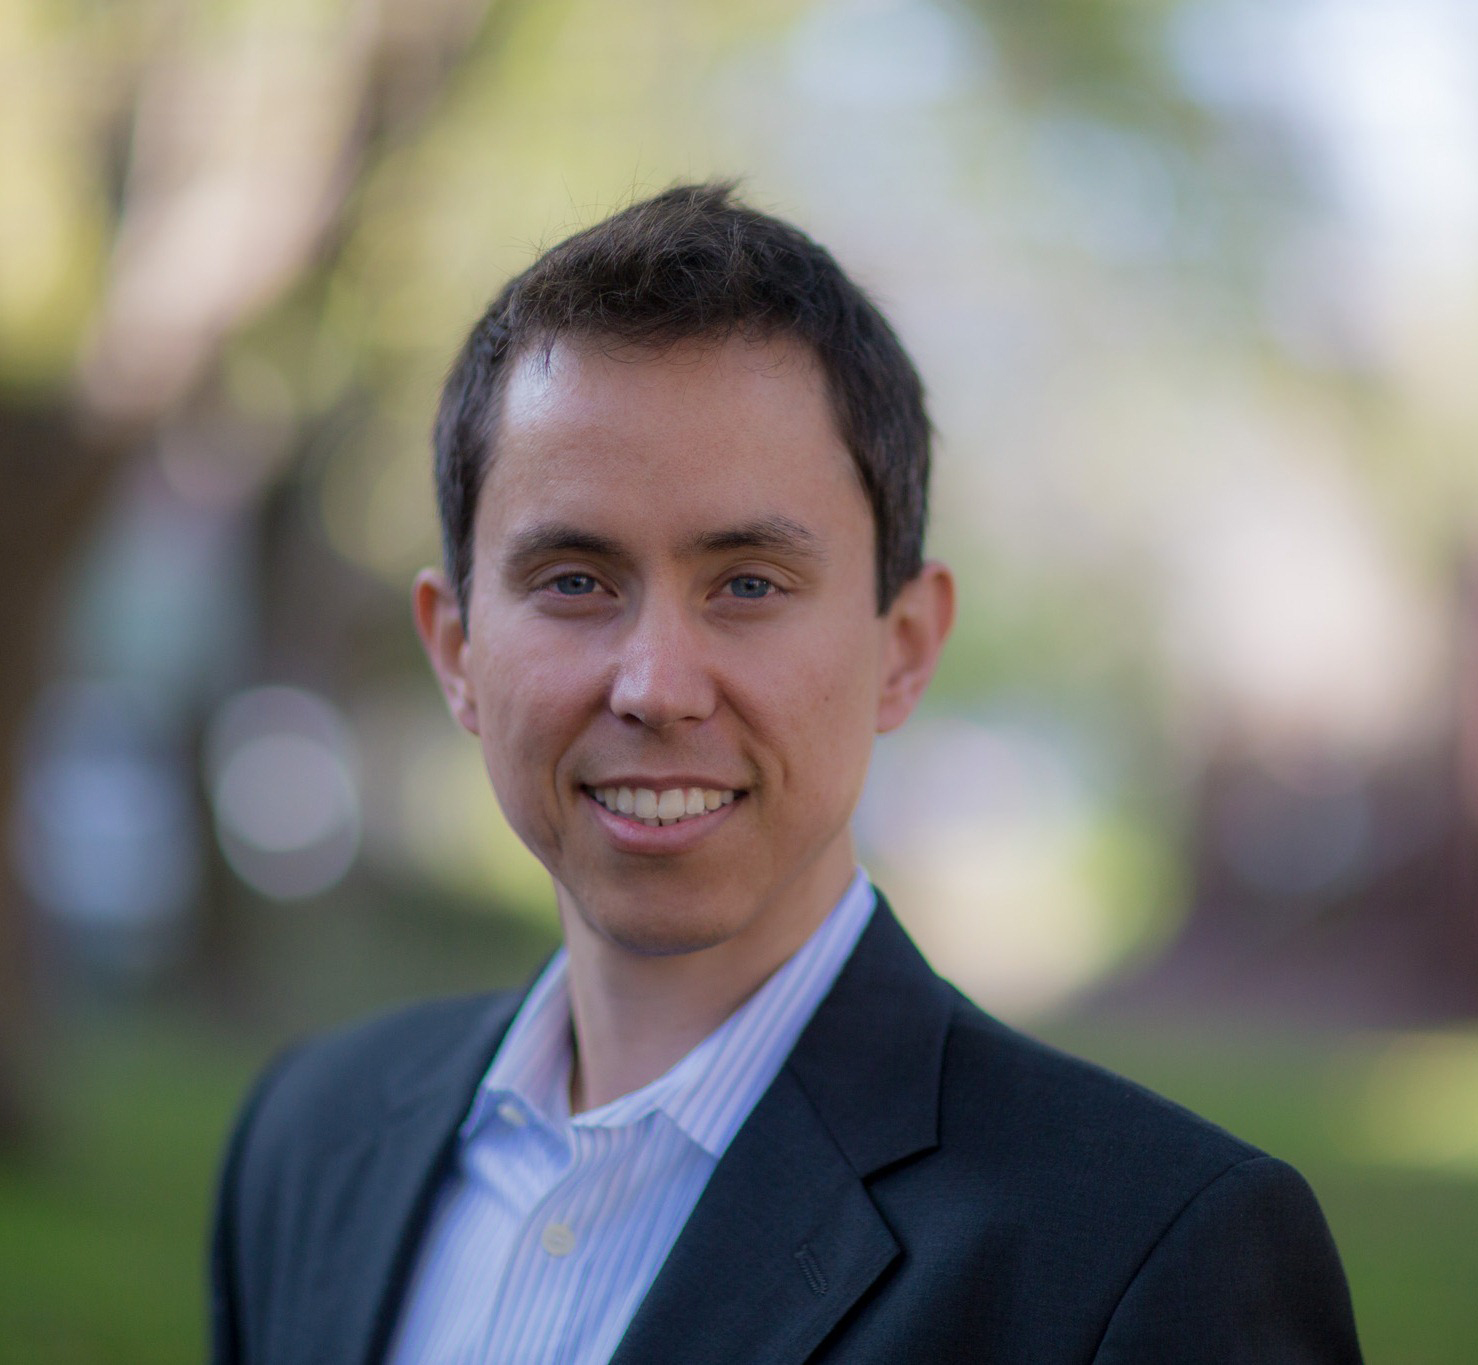 Josh Reeves, cofounder and CEO of Gusto